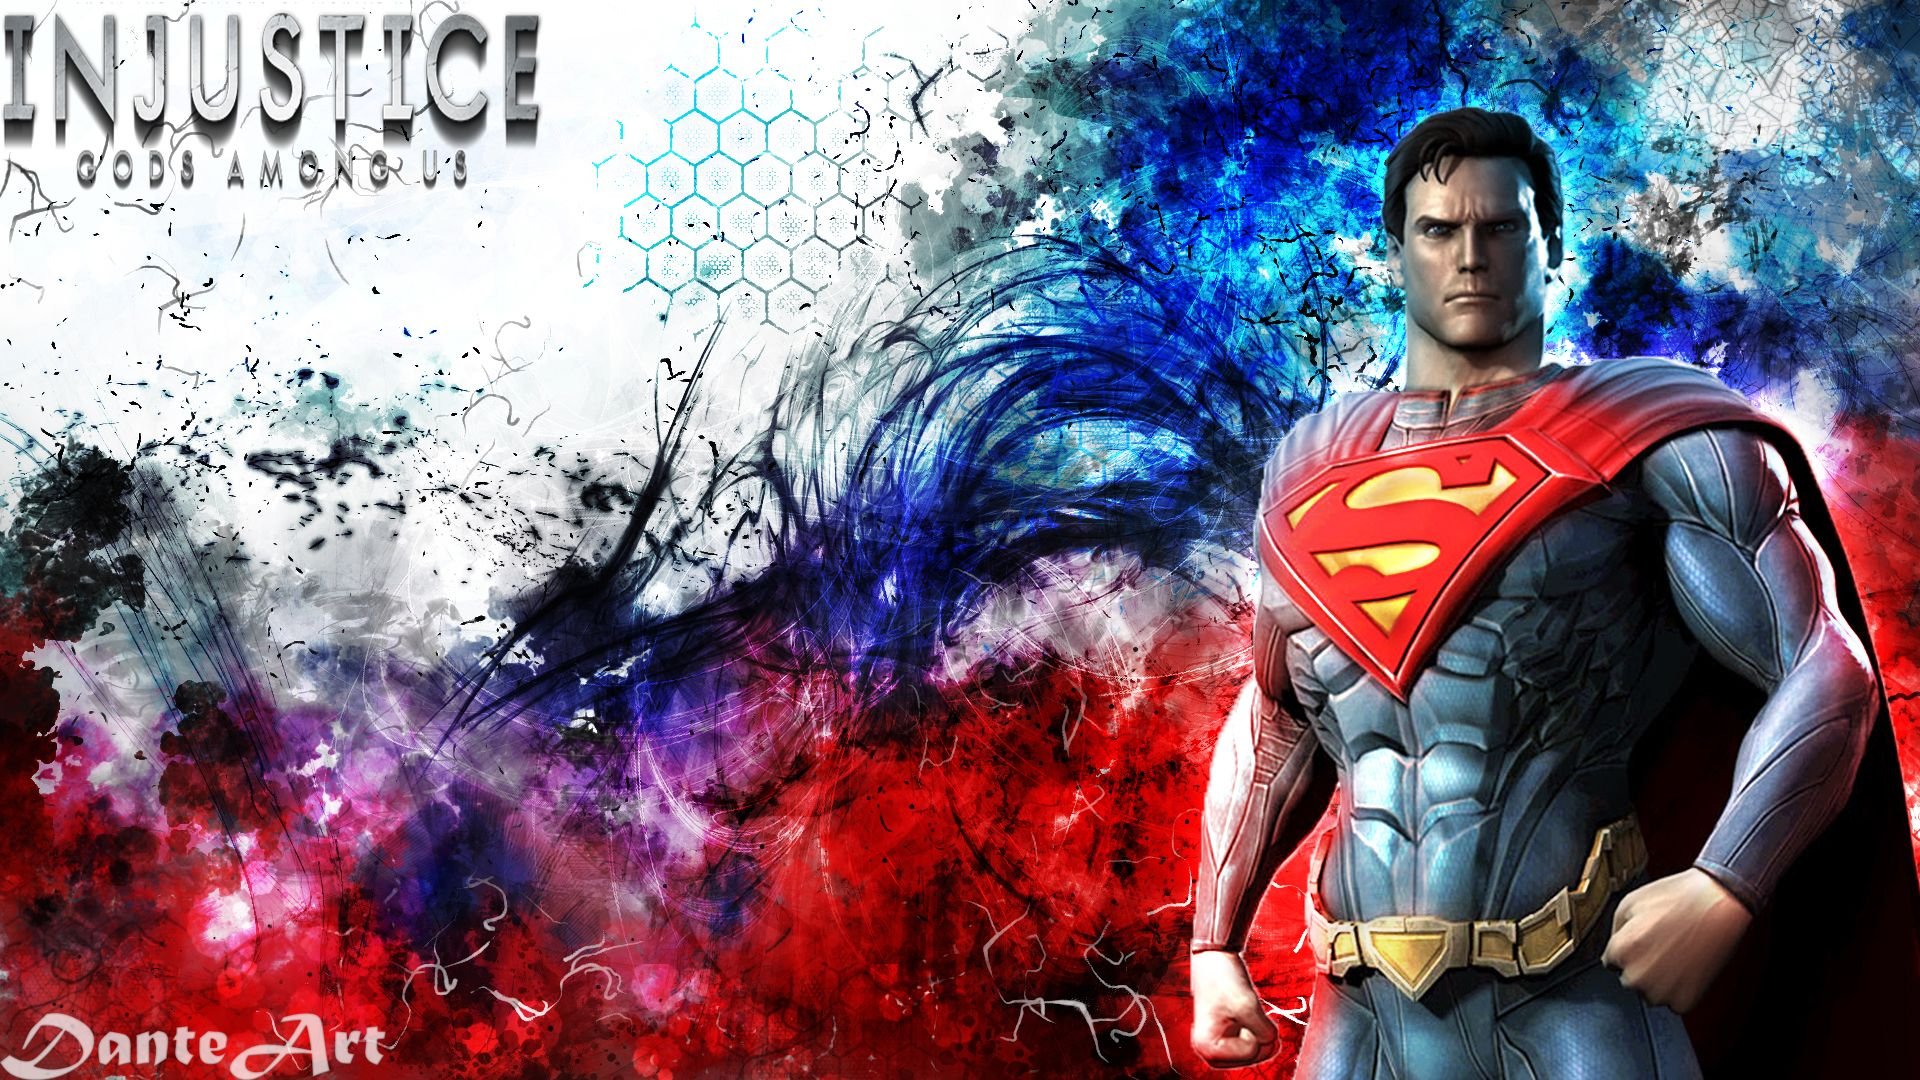 Injustice Gods Among Us Wallpaper Injustice Gods Among Us Wallpaper By Danteartwallpapers Superman Wallpaper Superman Artwork Laptop Wallpaper